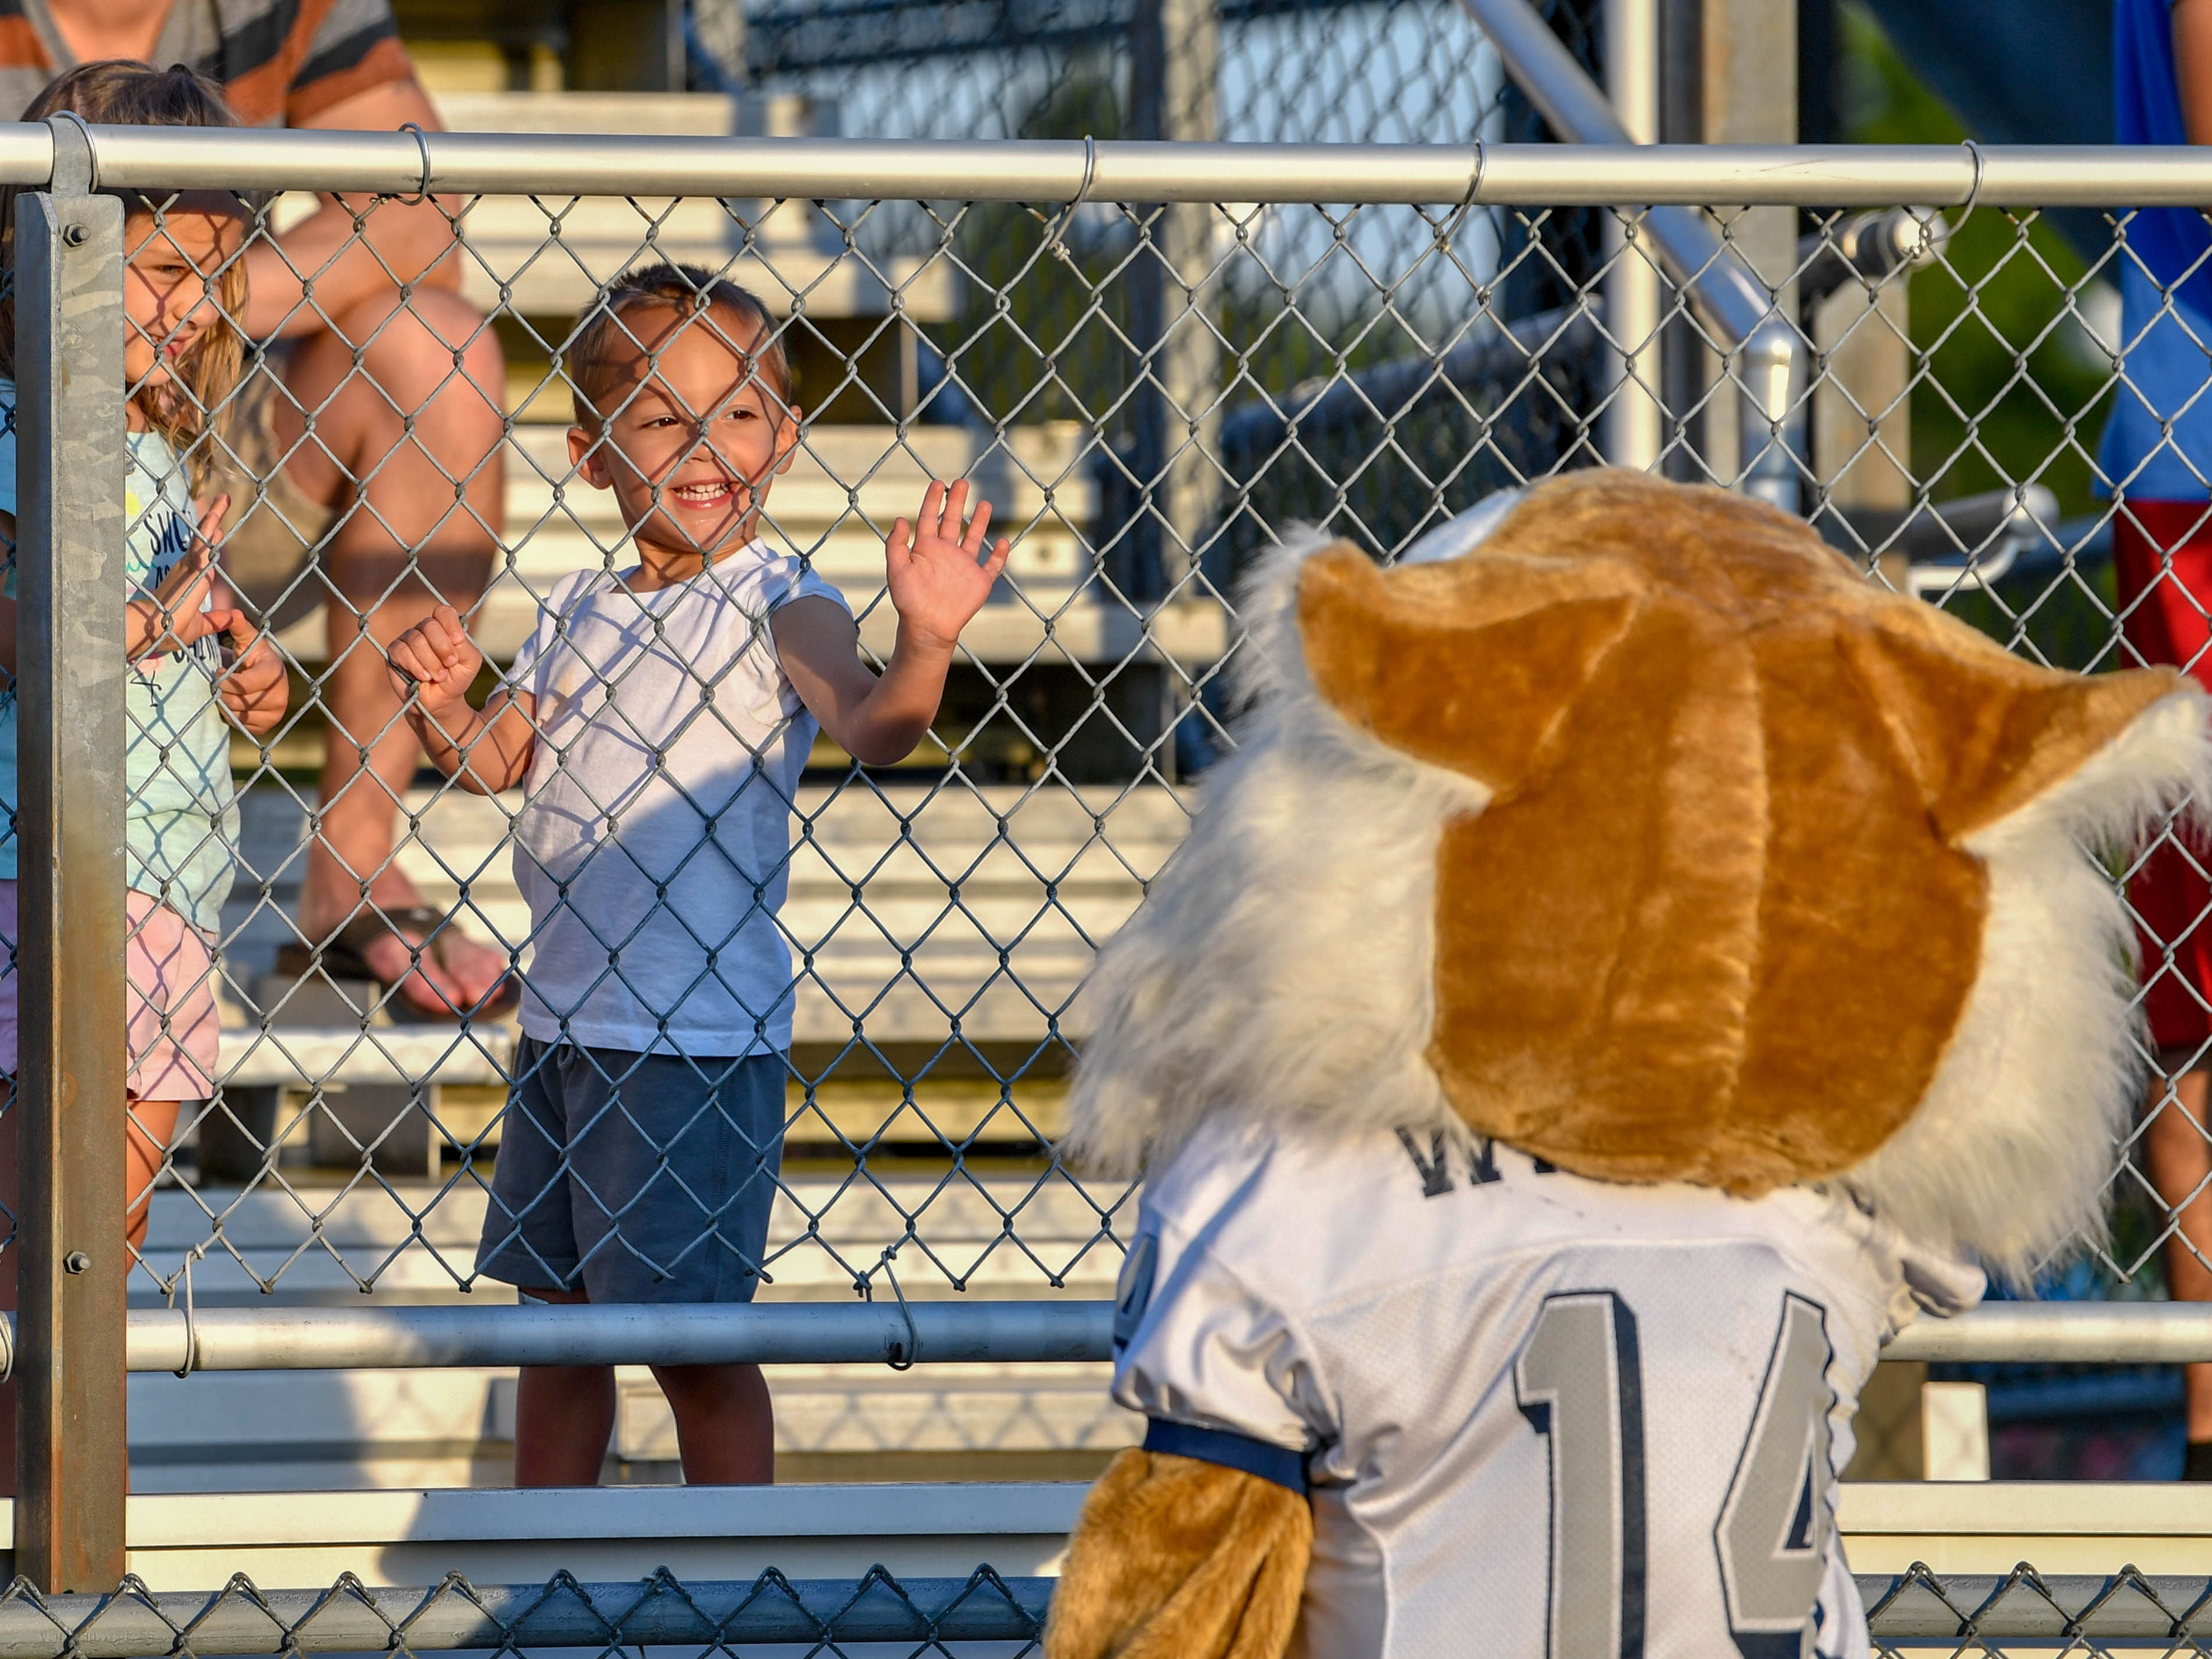 Young Dallastown fans greet Wildcat during the Dallastown home opening game against Hempfield on Friday, August 24, 2018.